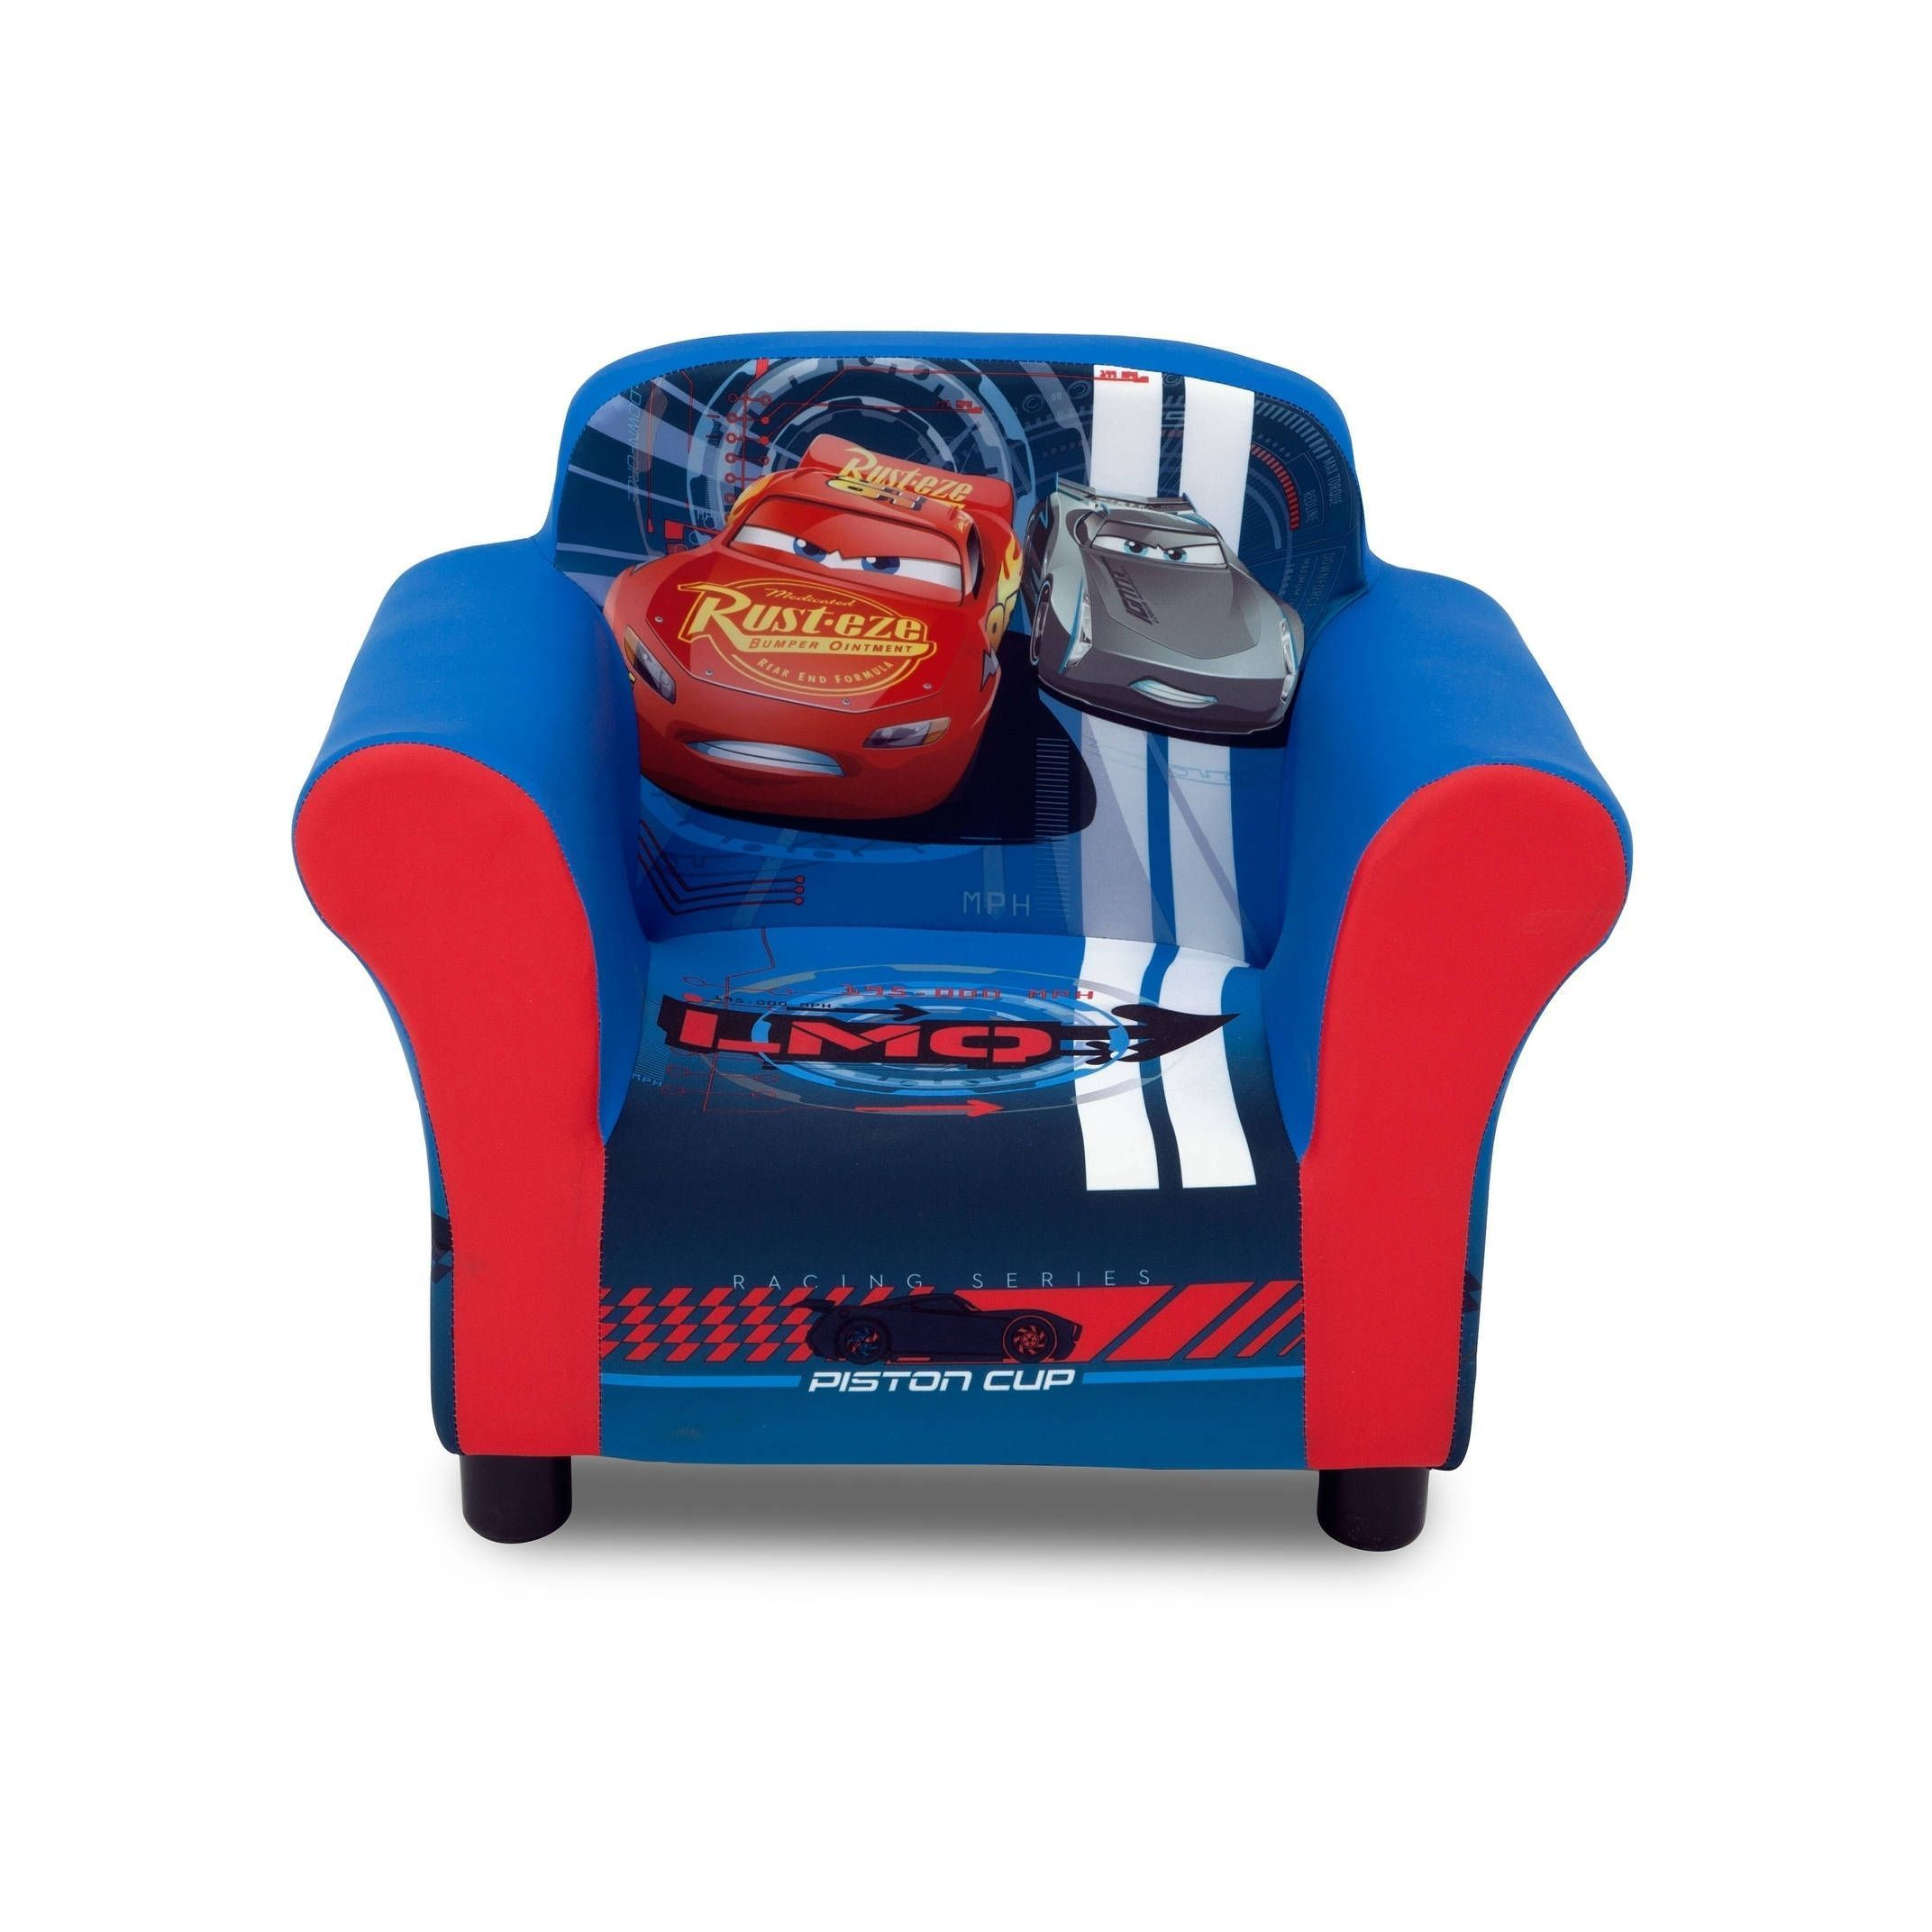 Toddler Chairs Upholstered Disney Pixar Cars Upholstered Chair Blue Polyester Blend